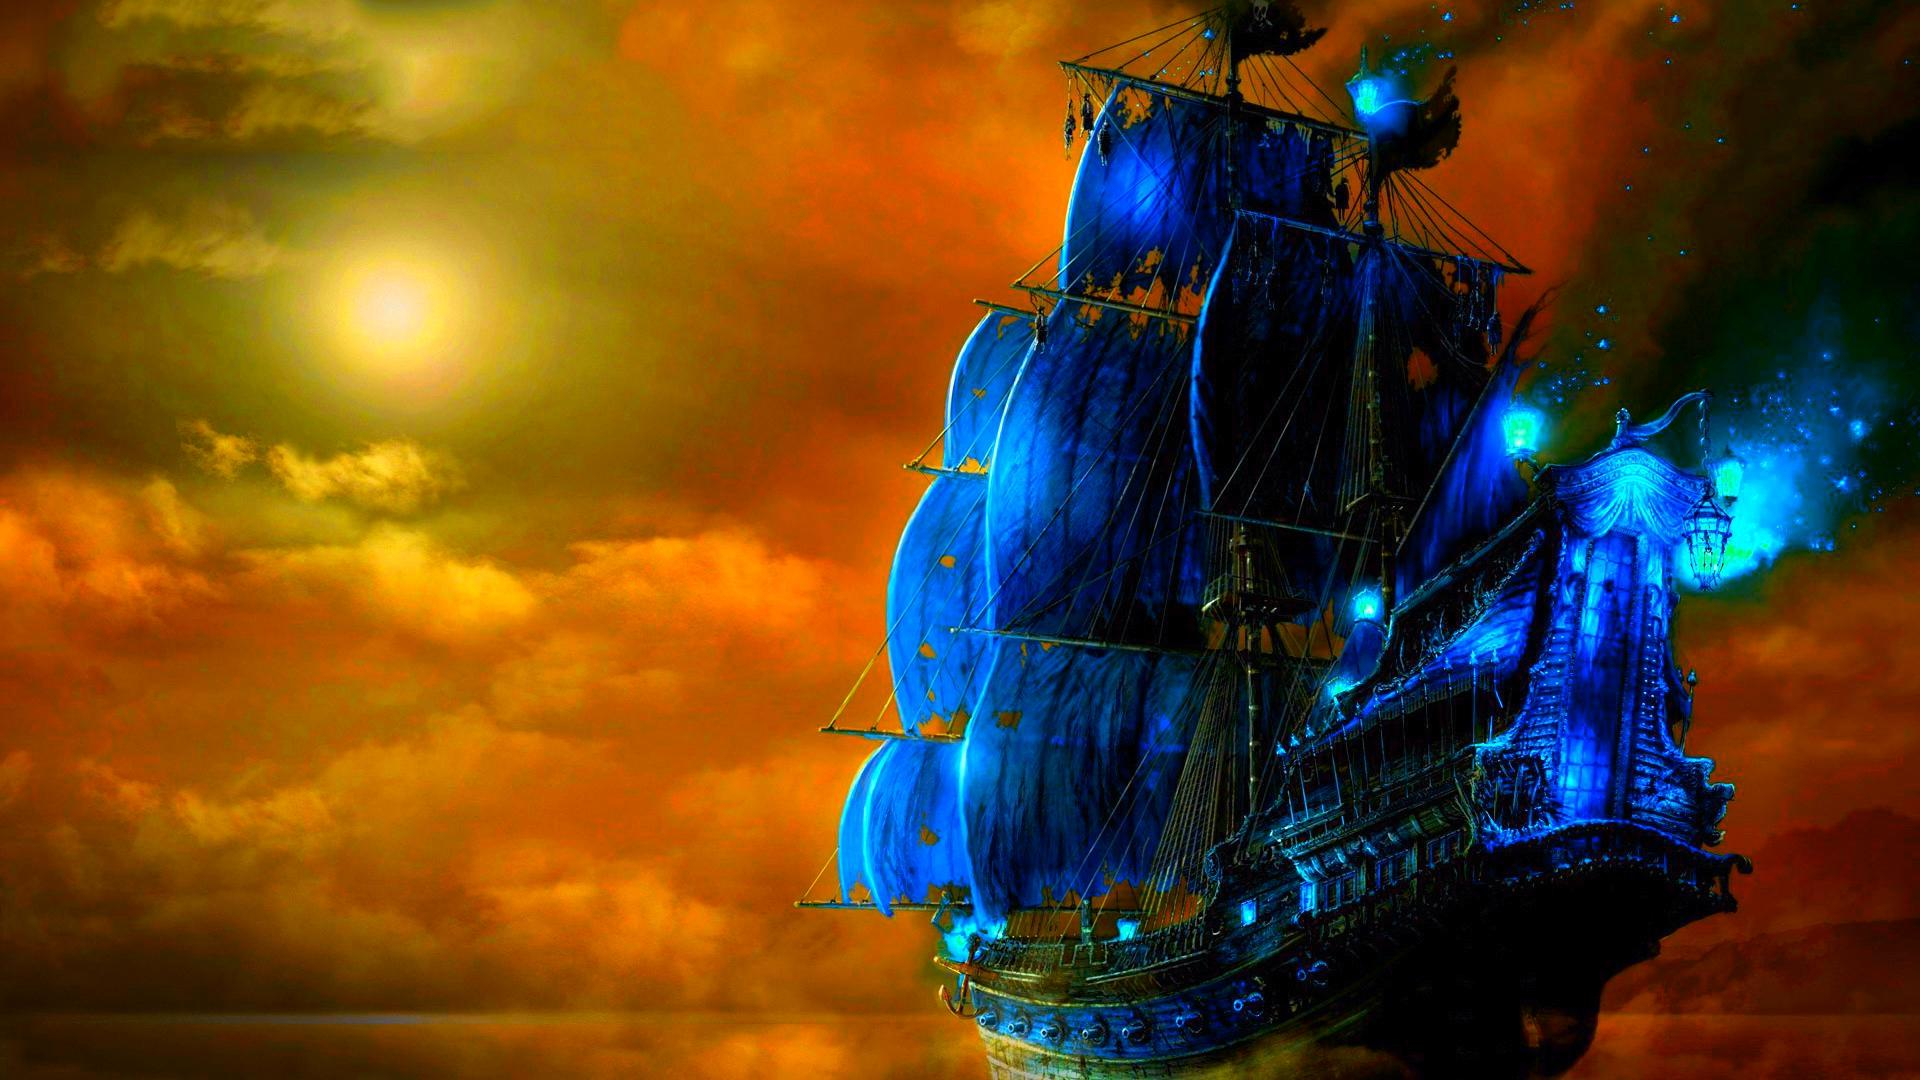 Queen Azula's Revenge T3 Upgrade Sea-pirate-wide-wallpaper_123215426_36